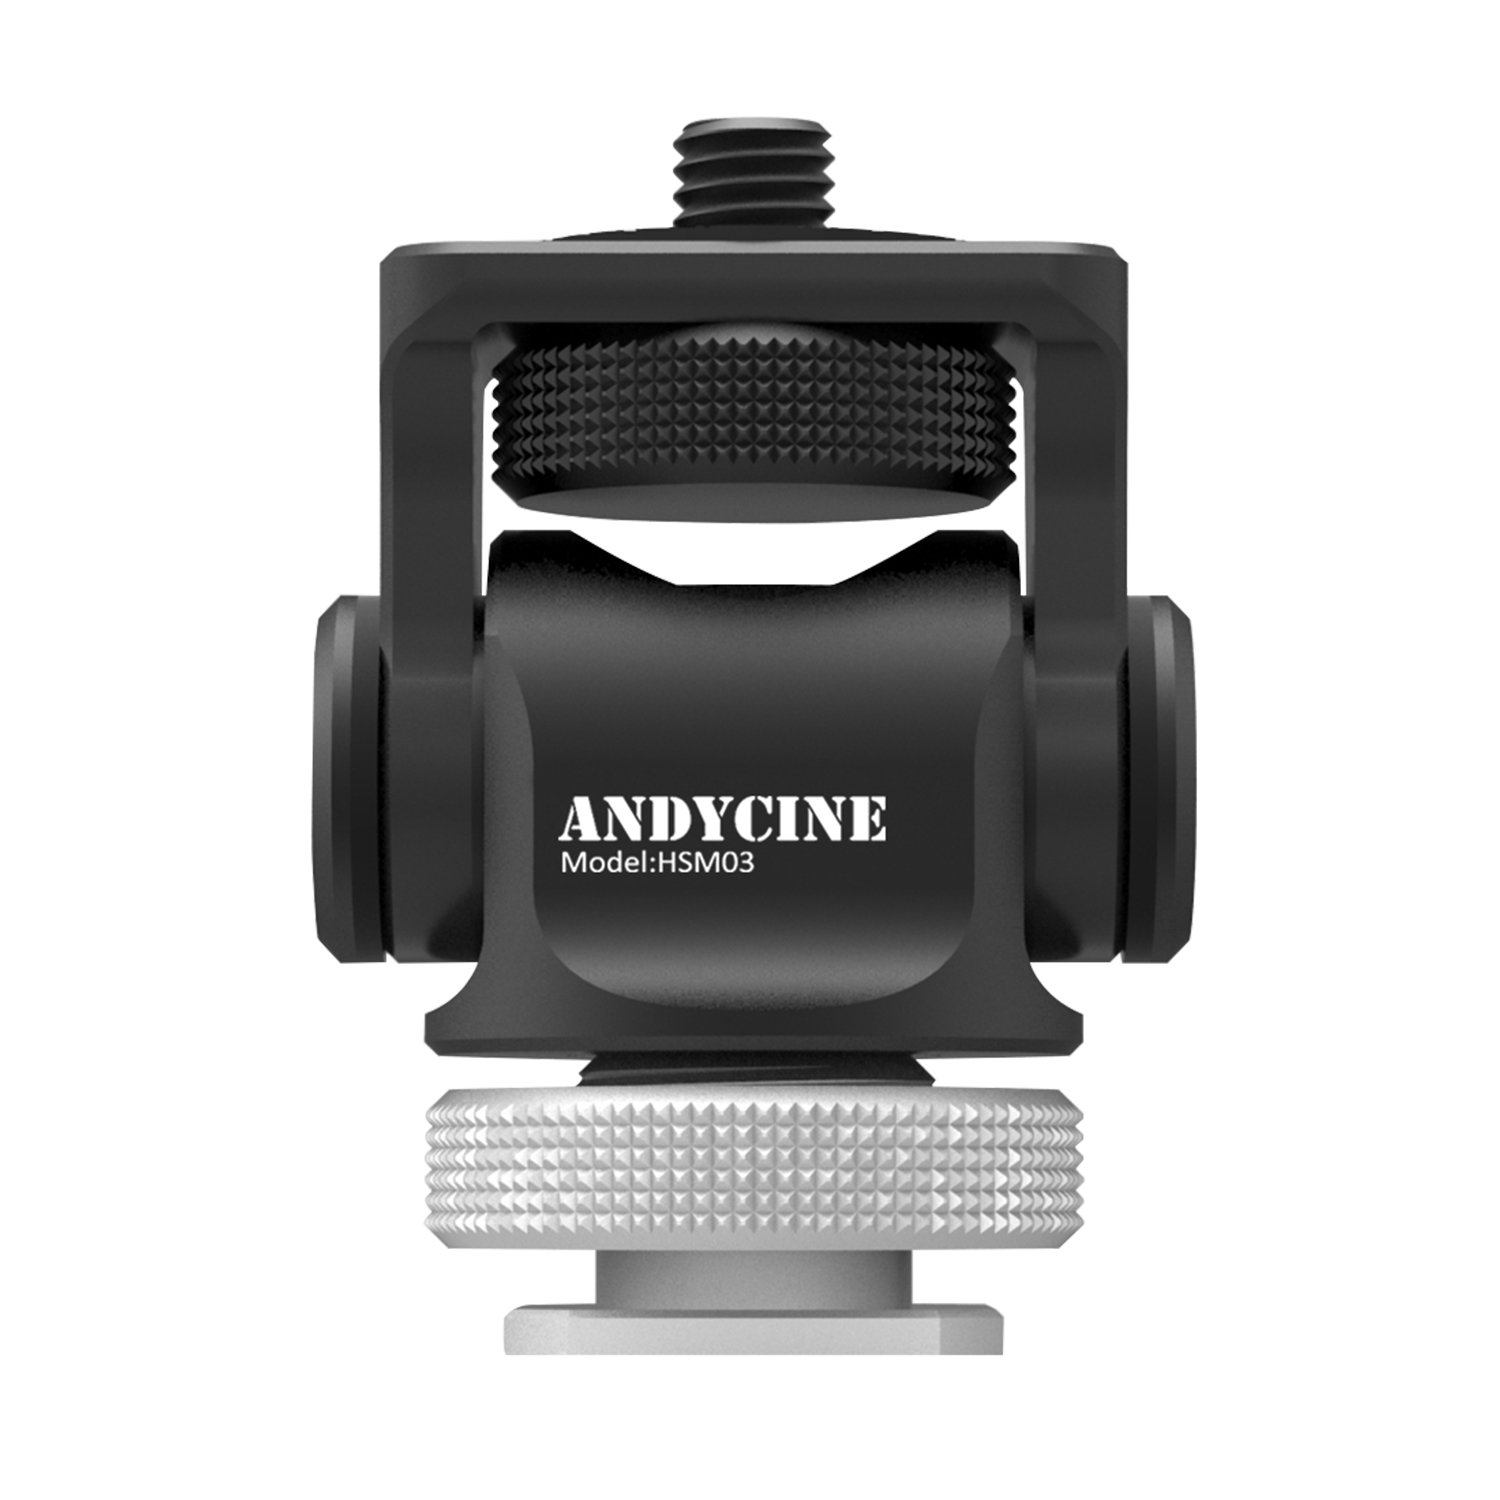 ANDYCINE Mini Hot Shoe Stand Monitor Mount 176 Degree Upper Rotation 360 Degree Base Rotations With Screw Fixture Camera EDC Tools Box